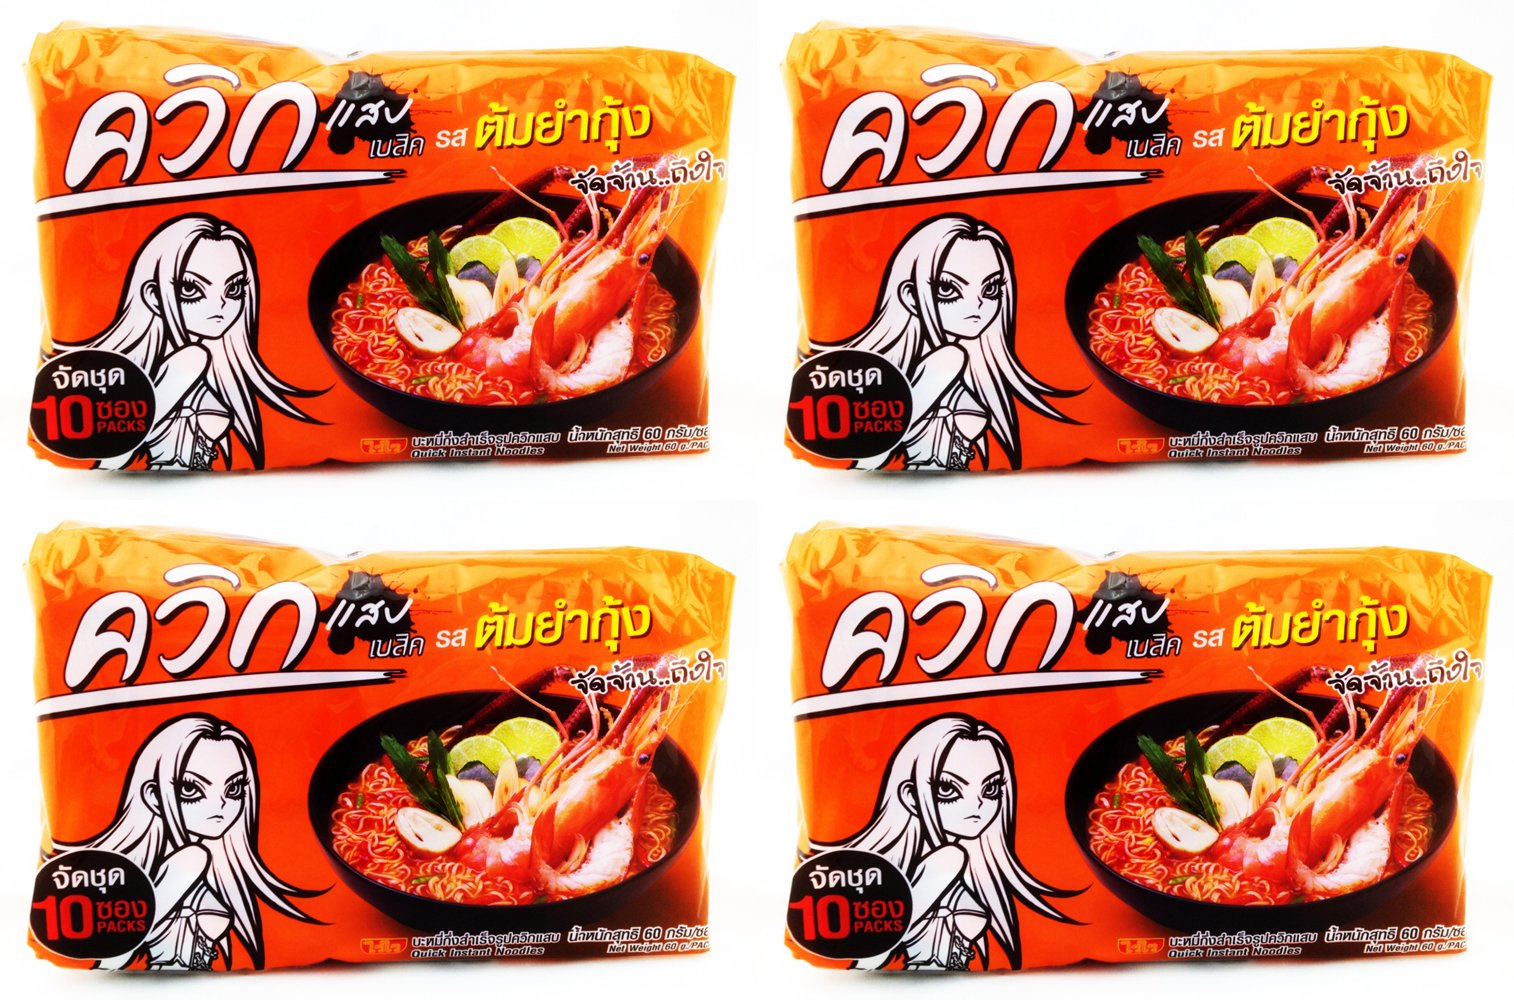 4 Packages TOM YUM Shrimp Flavour Instant Noodles, Net. Wt. 60 G X 10, Thai Best Seller [Favorite Thai Food], Product of Thailand by Wai Wai Quick Zabb